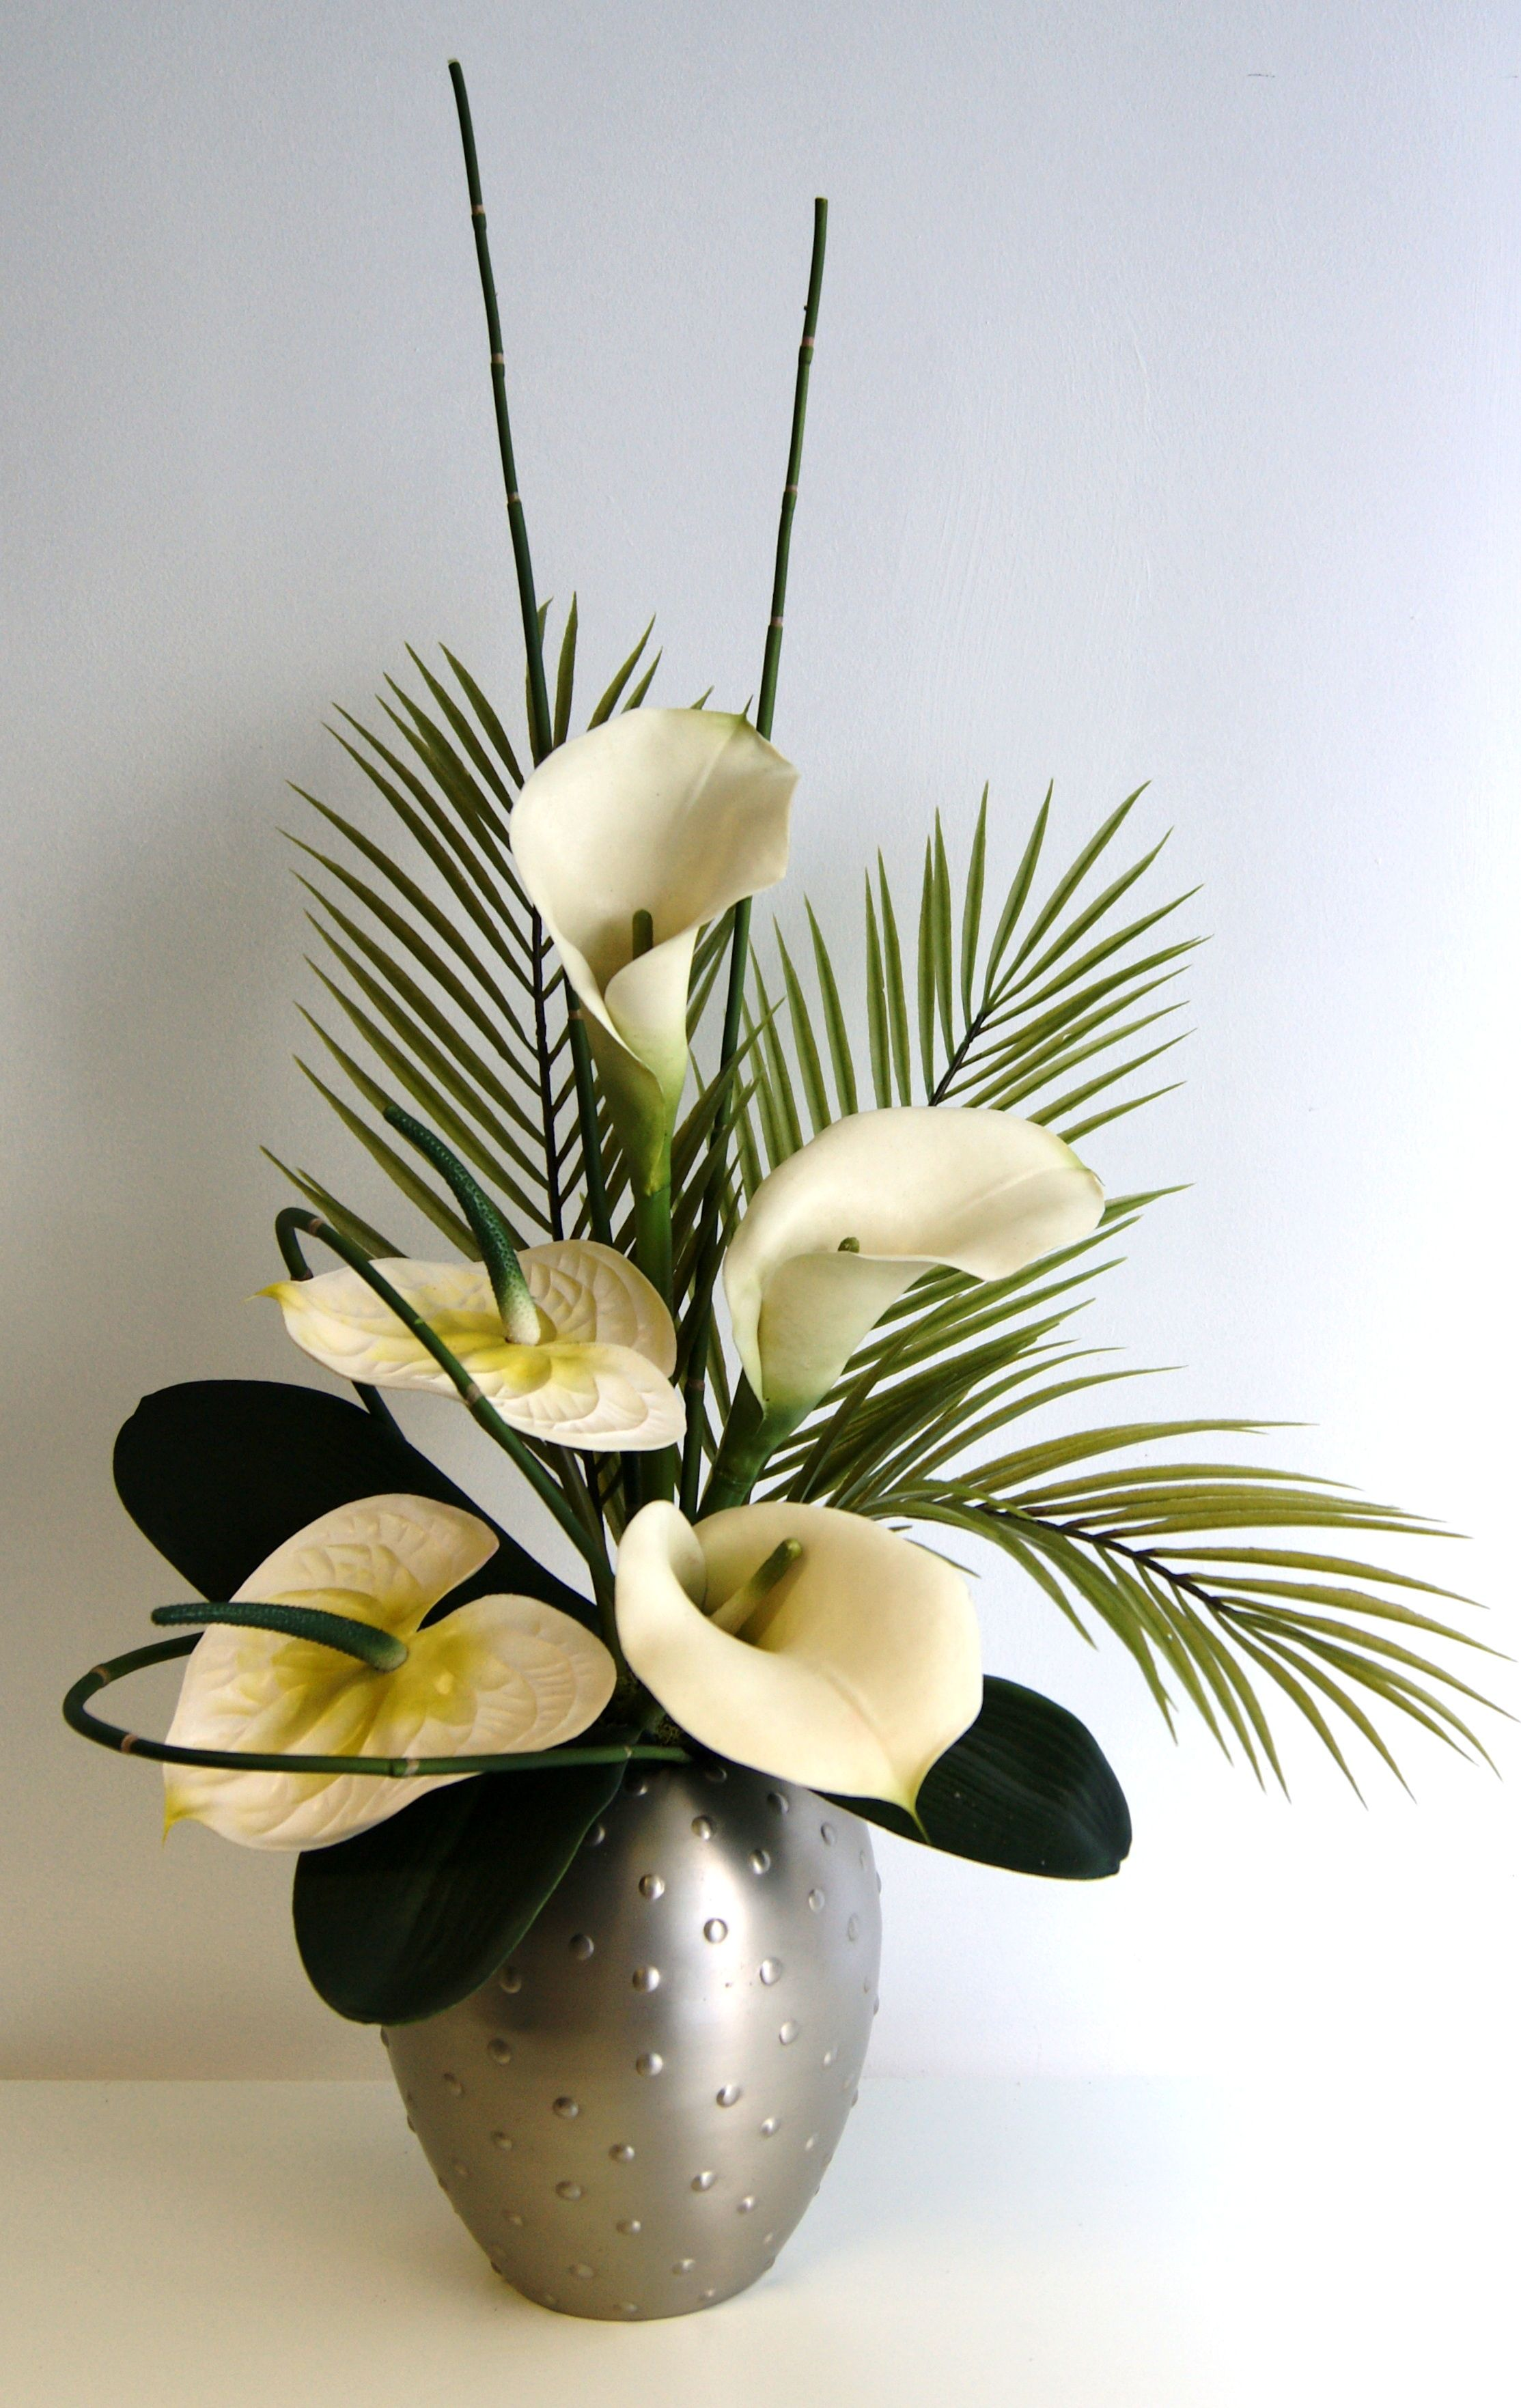 Ginger Lily Floral Design Ivory And Green Arrangement With Calla